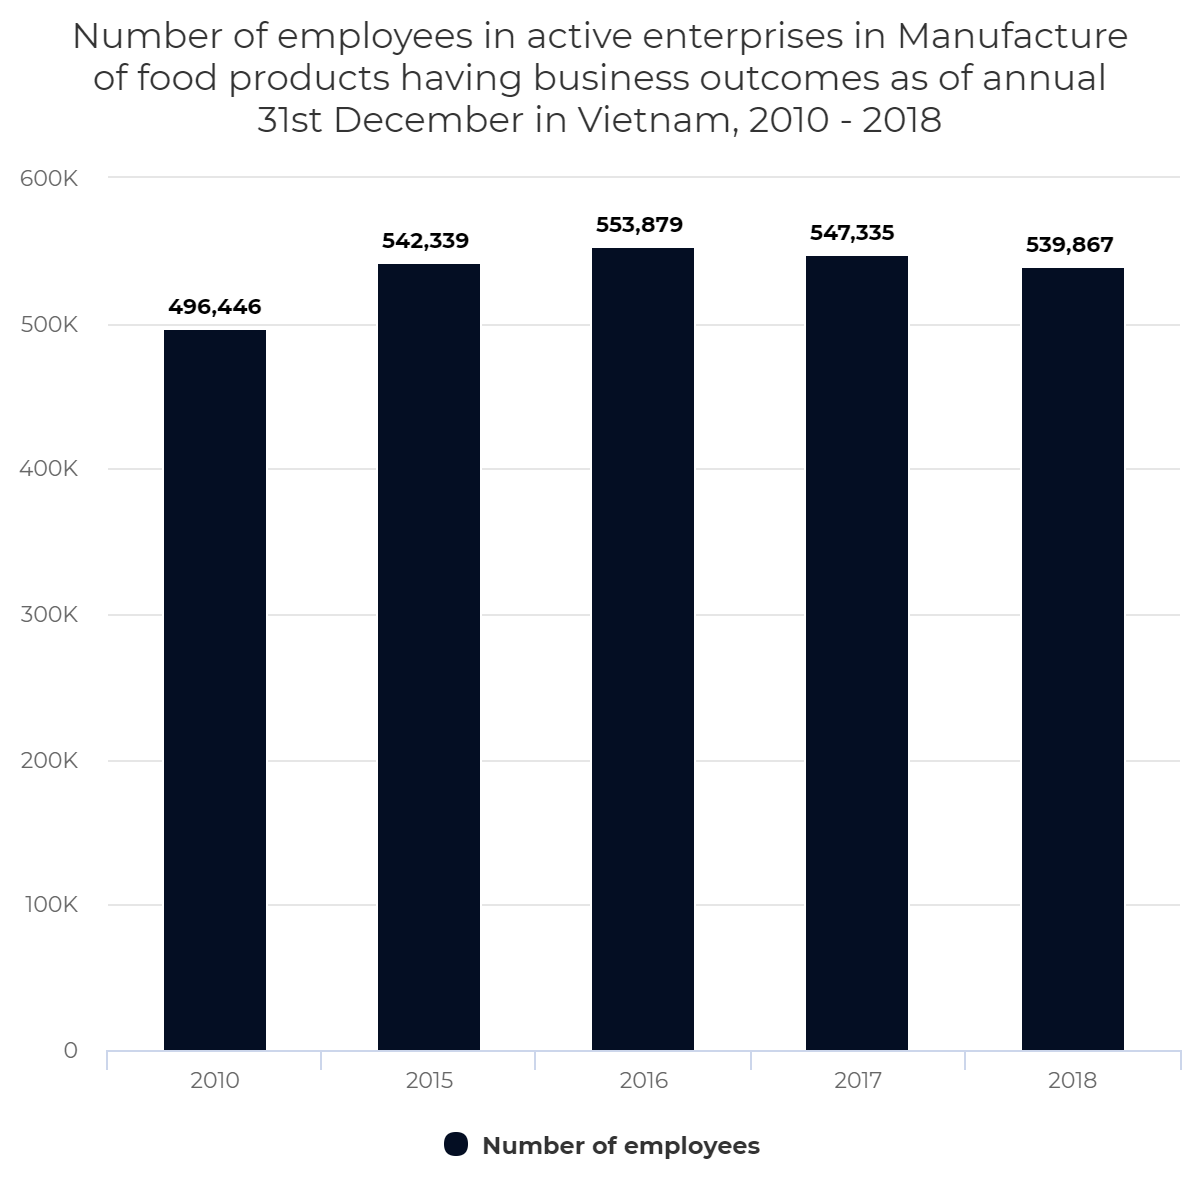 Number of employees in active enterprises in Manufacture of food products having business outcomes as of annual 31st December in Vietnam, 2010 – 2018